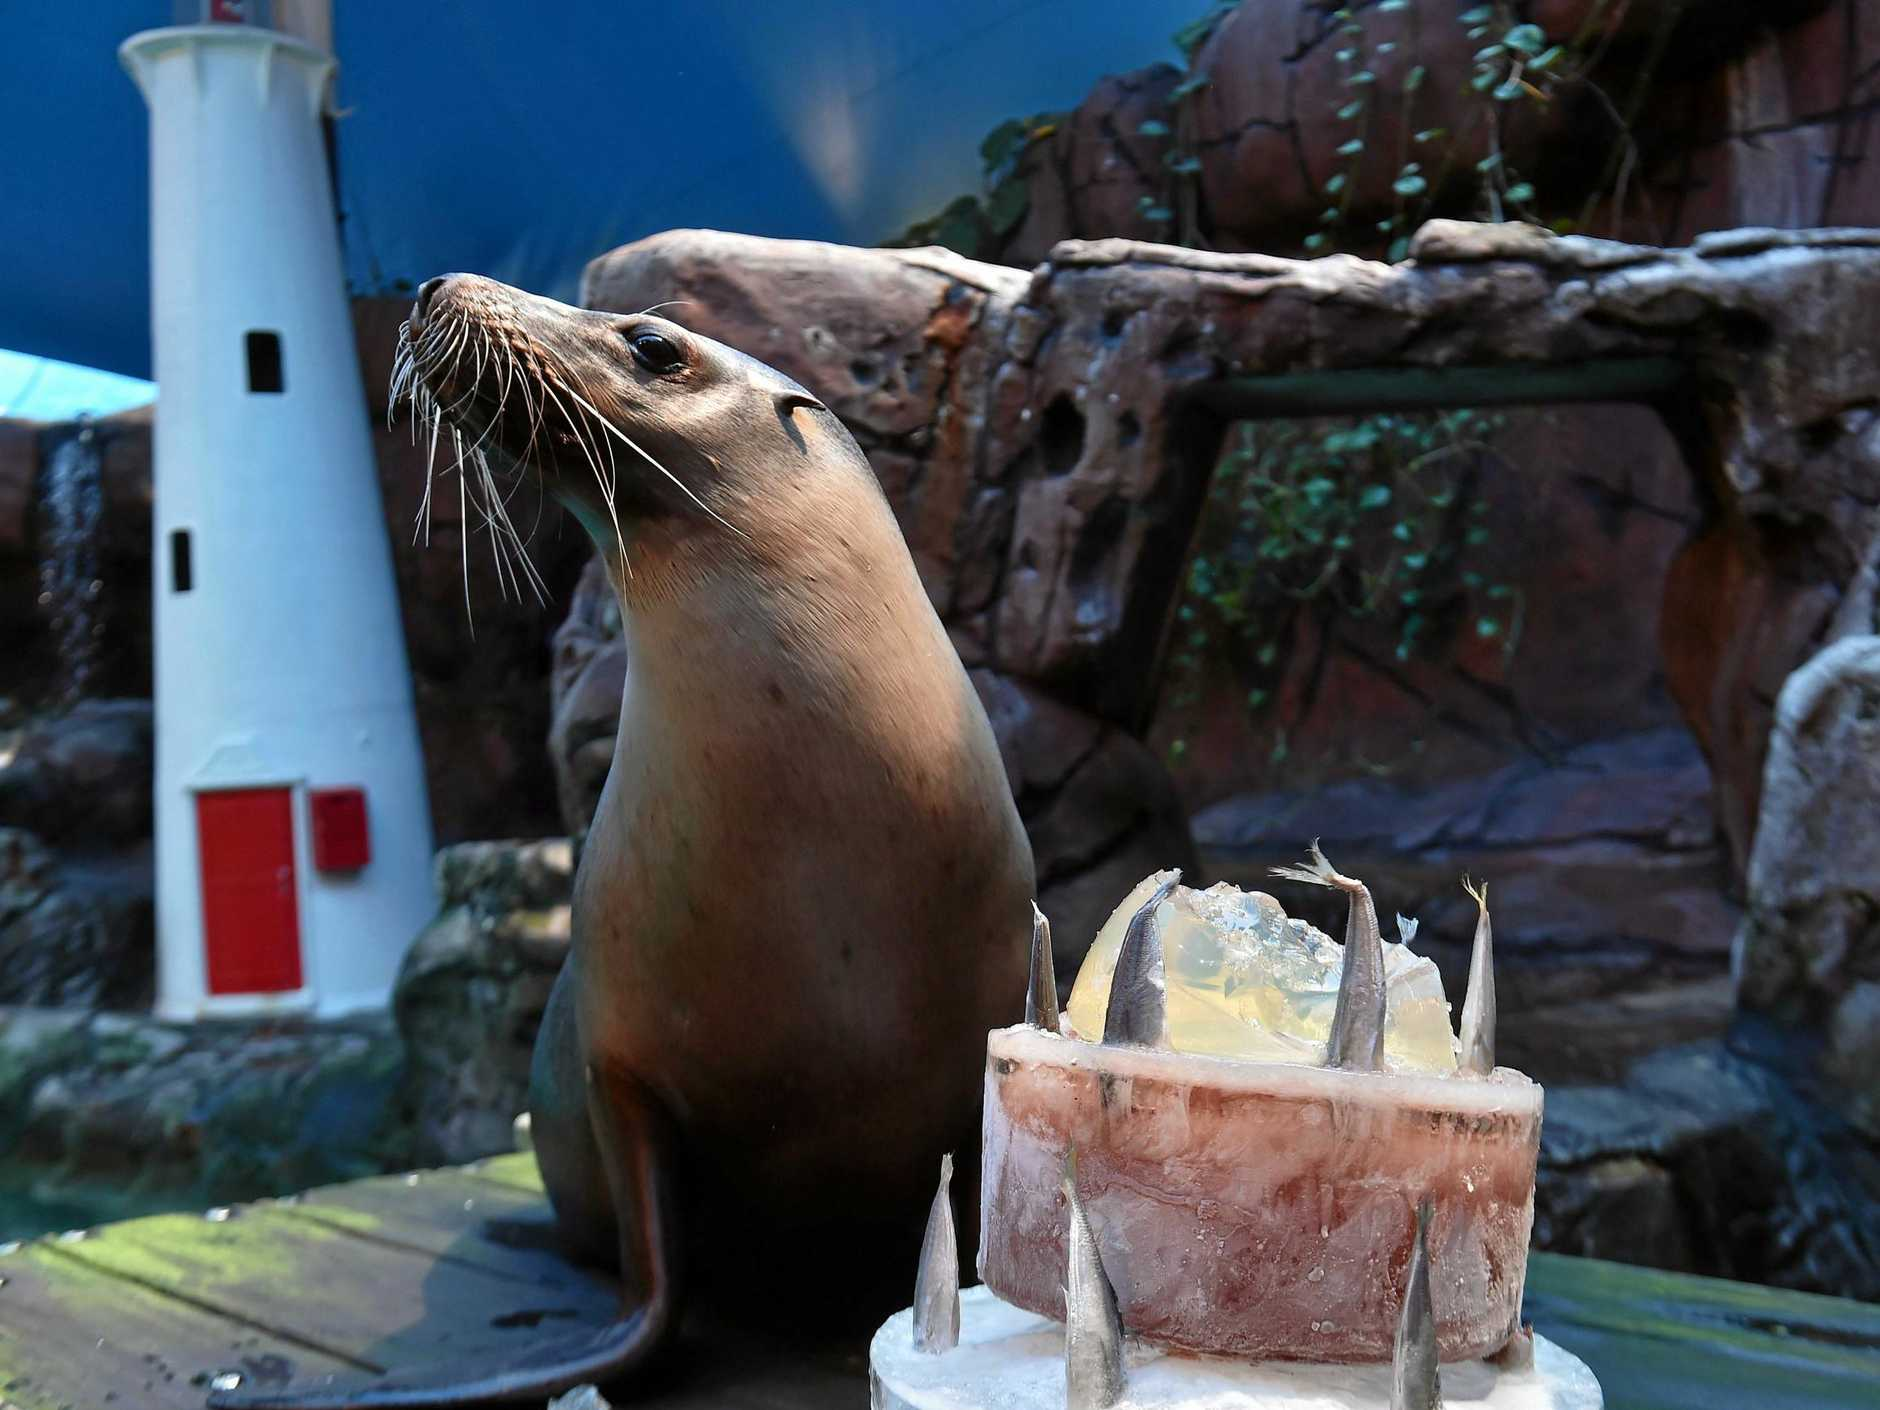 Portia the seal at Sea Life is celebrating her 28th Birthday.